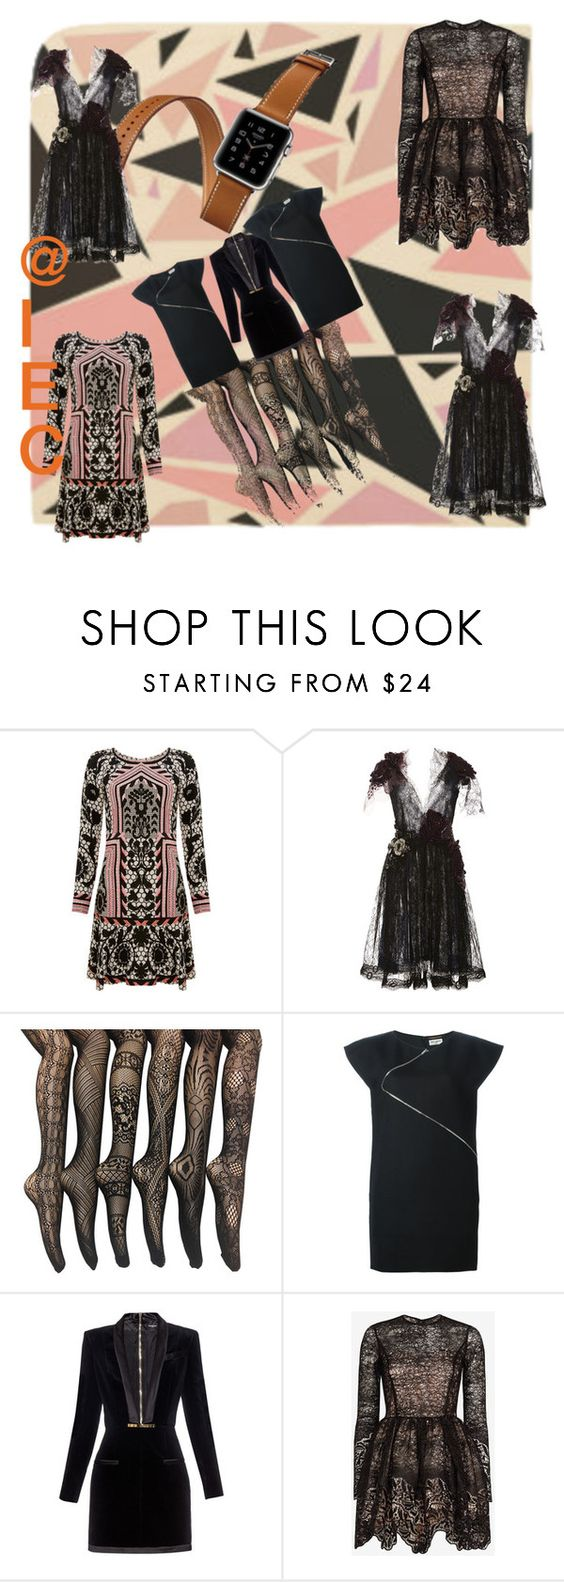 """""""Surrealism"""" by kit92 ❤ liked on Polyvore featuring Temperley London, Rodarte, Hermès, Yves Saint Laurent, Balmain and Alexis"""